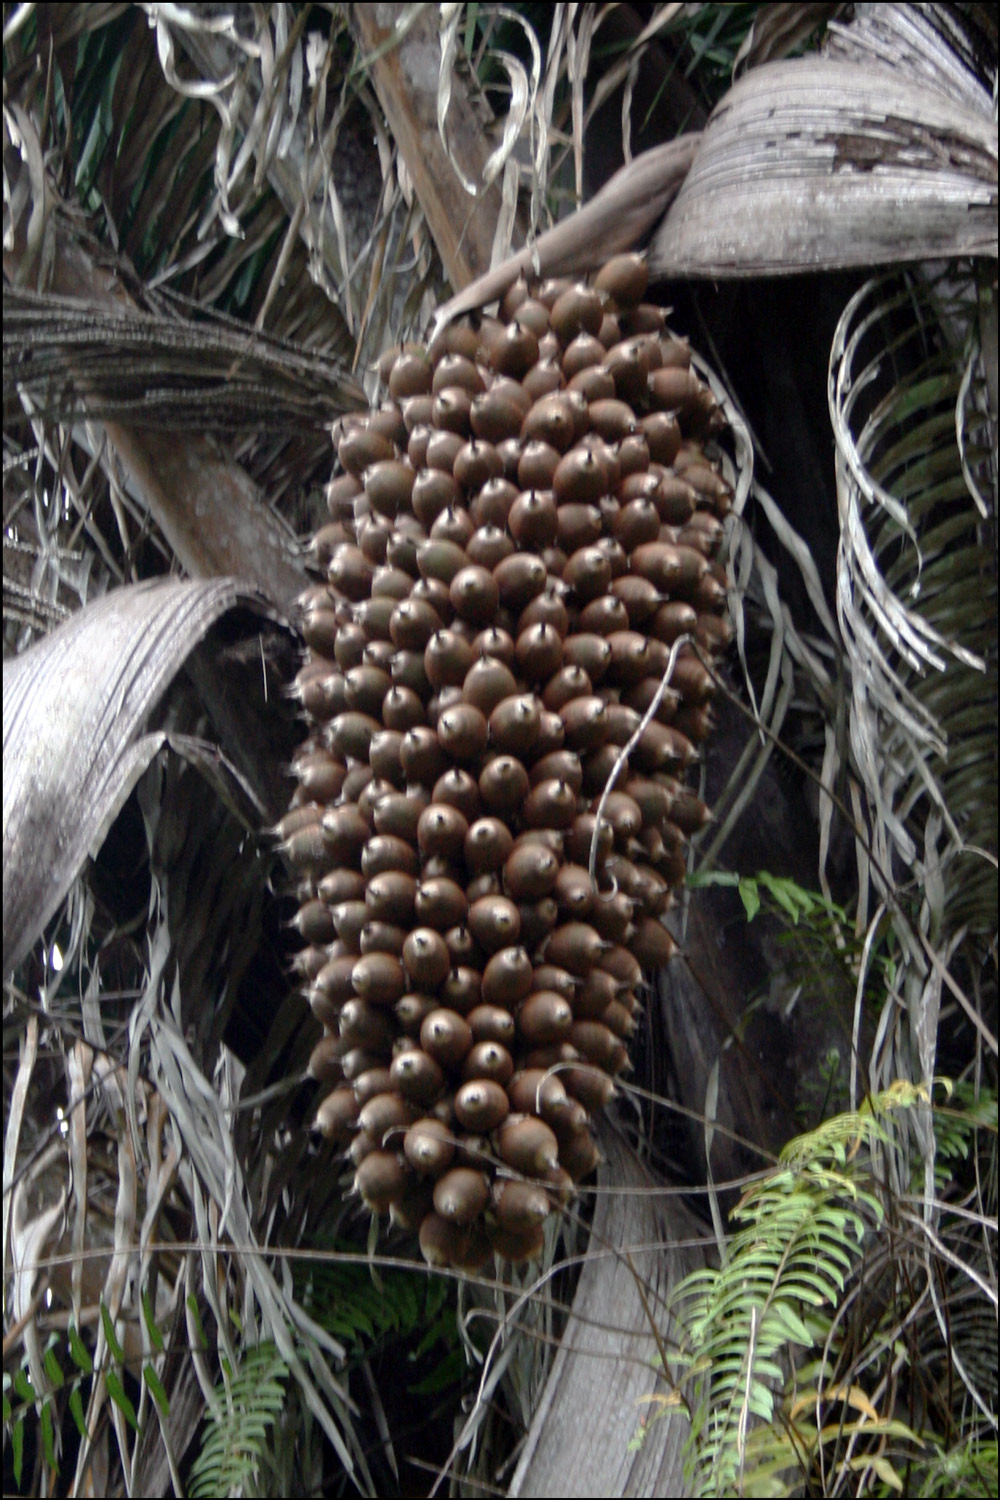 Fruits of the Cohune Palm